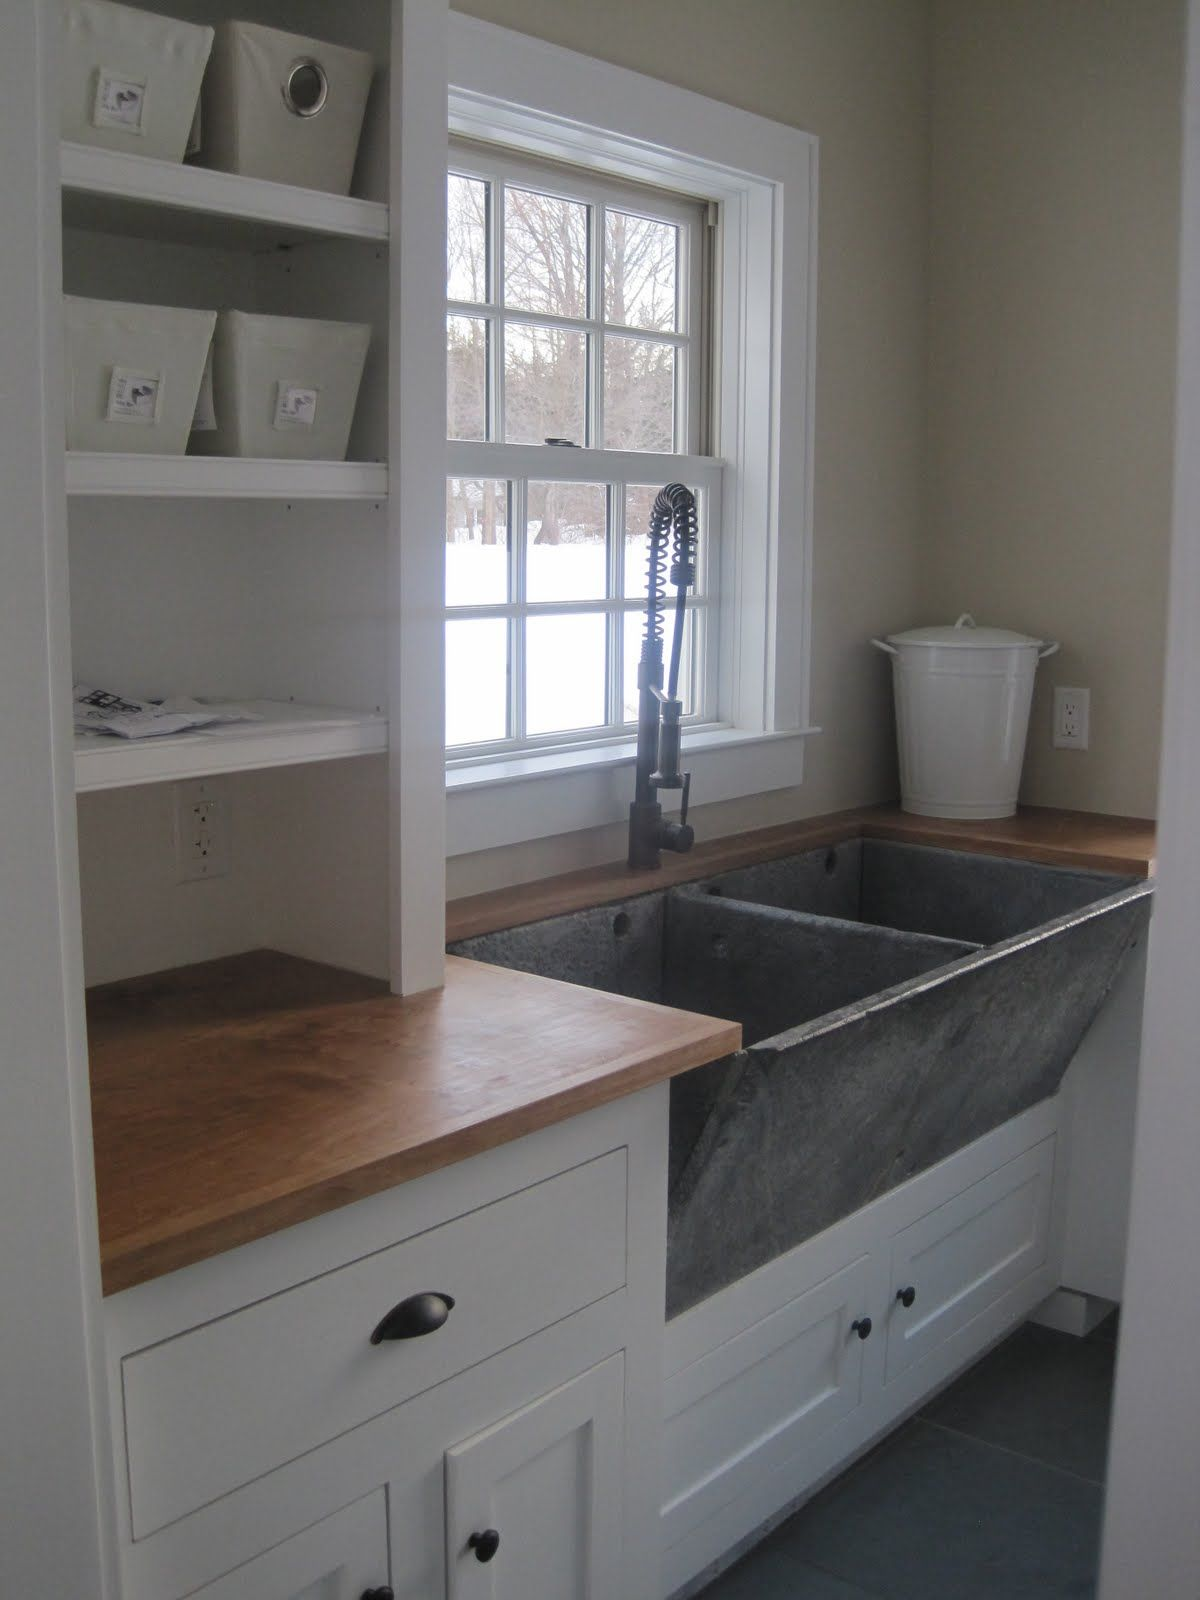 luxe laundry rooms - design chic | laundry room/mud room